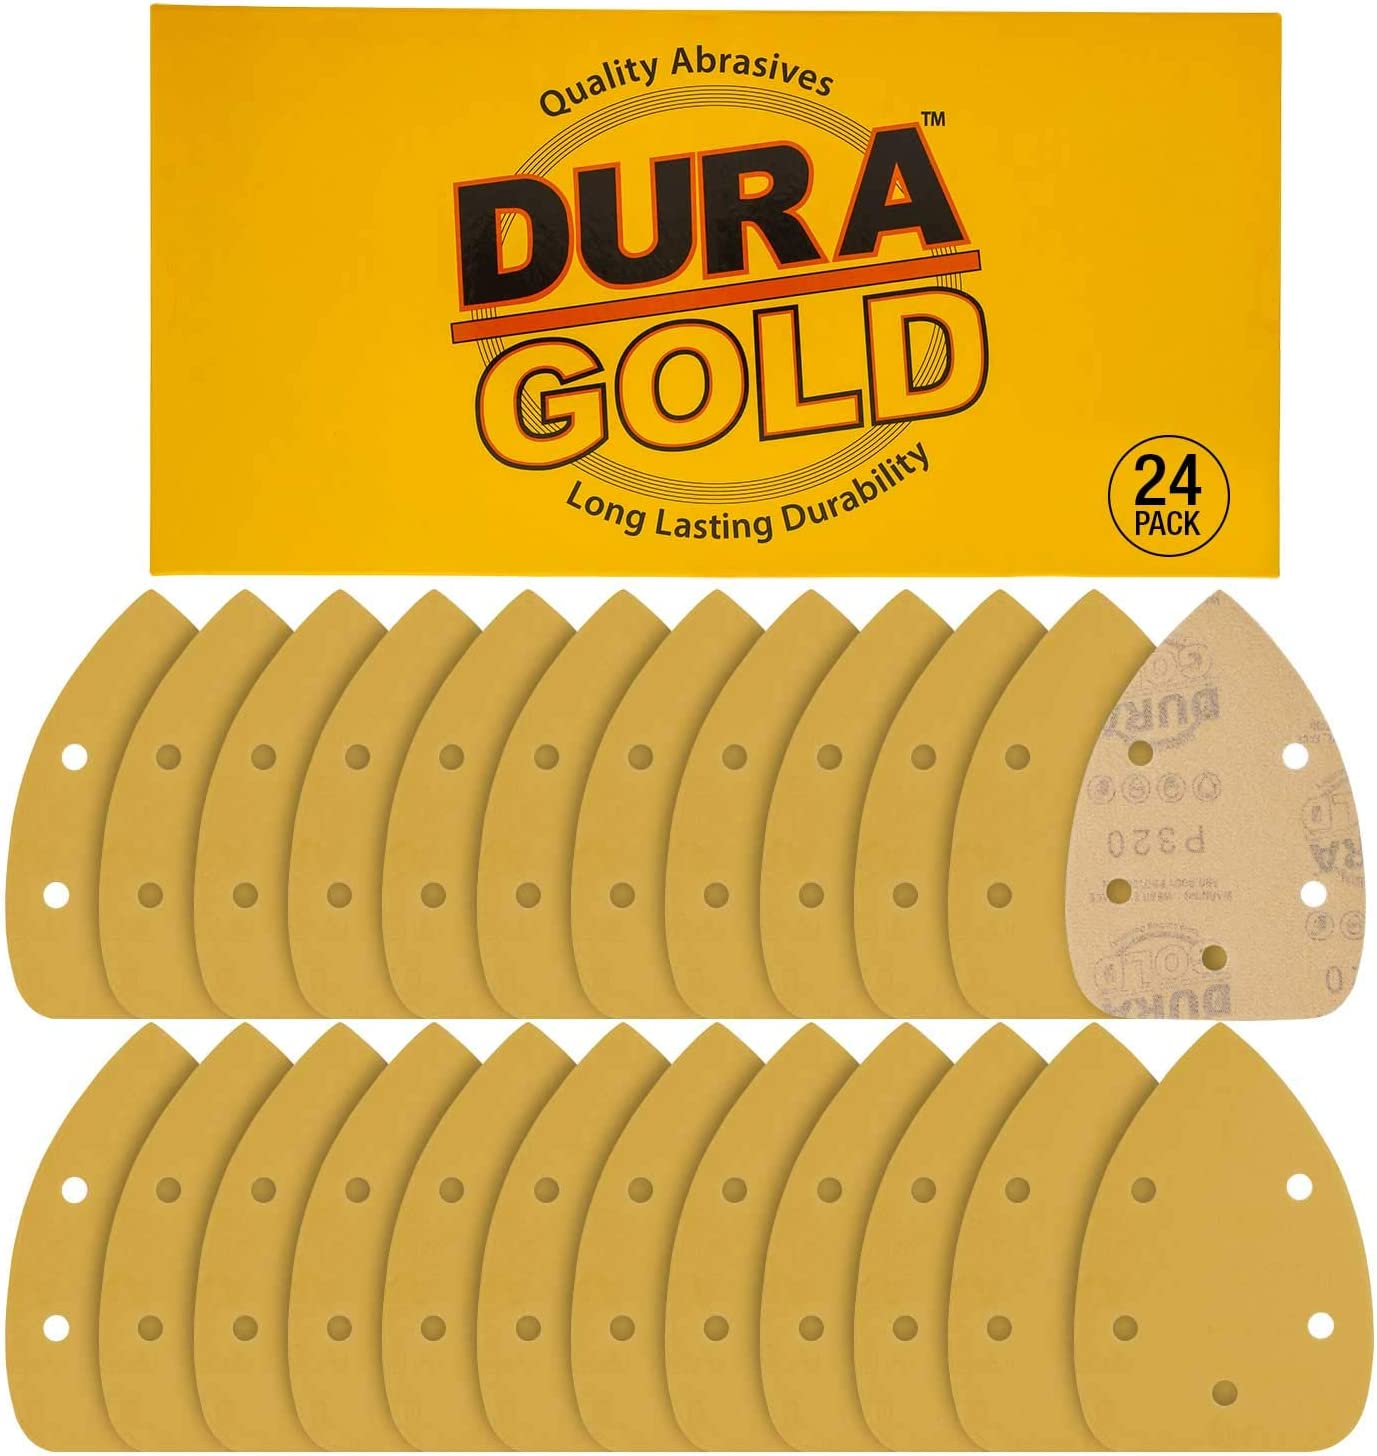 18 Sheets of 40 Grit 5-Hole Hook /& Loop Sanding Sheets for Mouse Sanders Premium Hook /& Loop Dura-Gold Sandpaper Finishing Sheets for Automotive and Woodworking